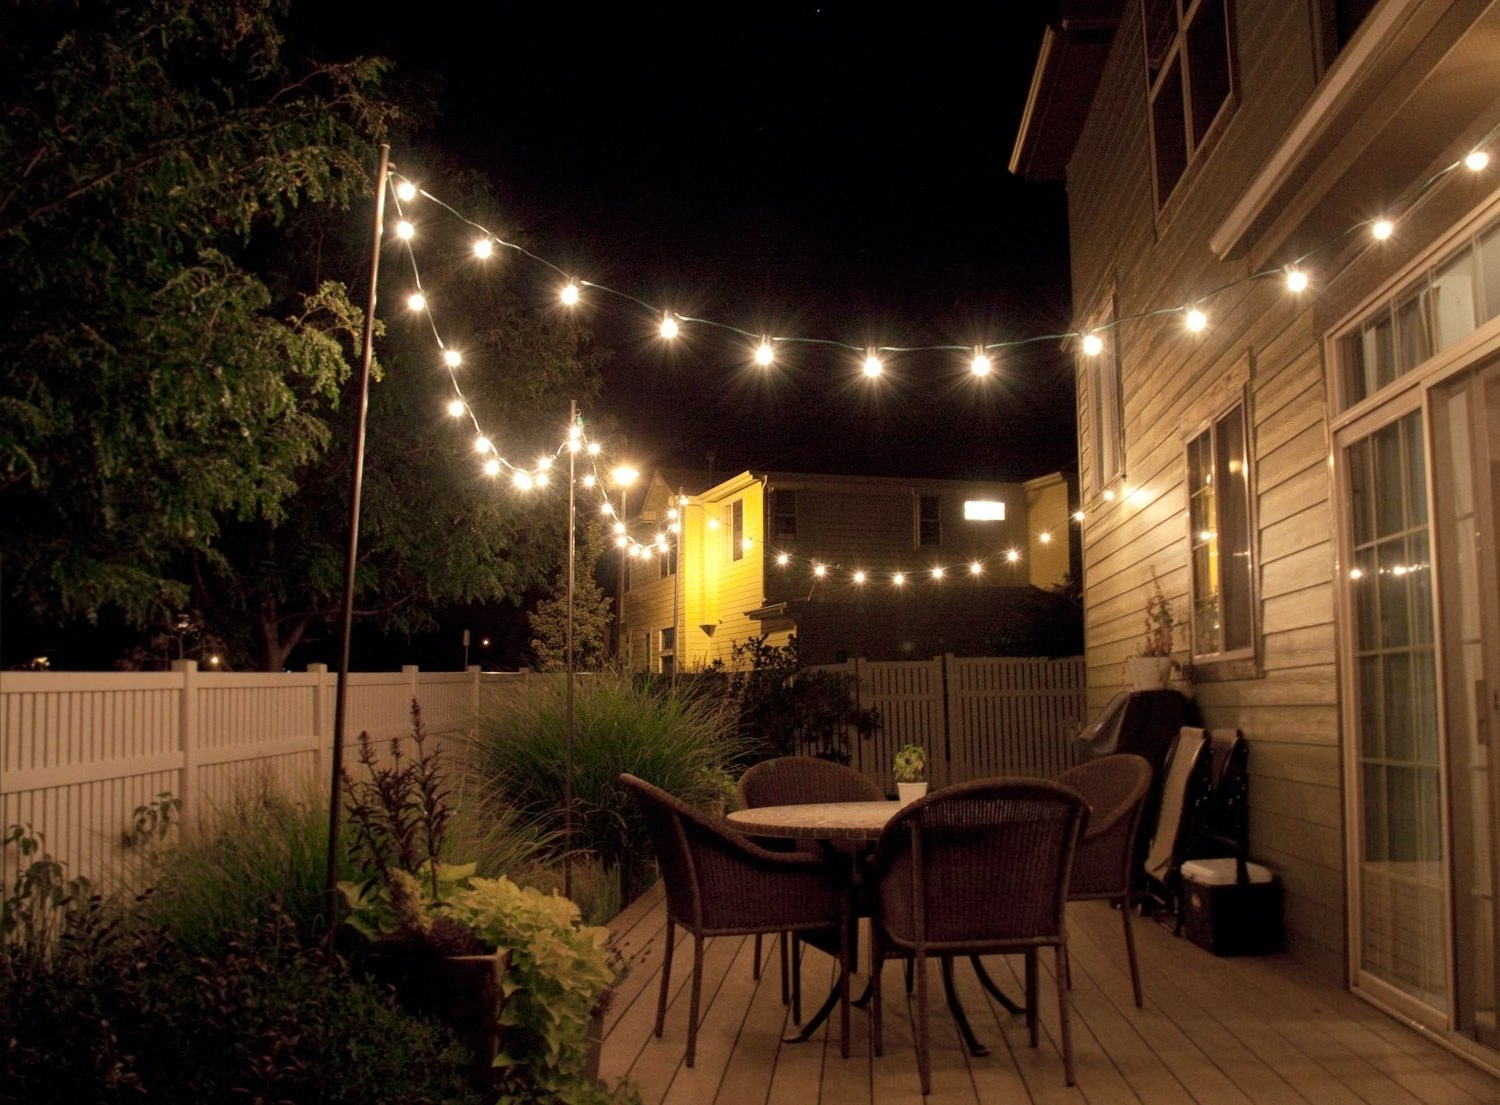 Current Hanging Outdoor Lights On Fence With How To Make Inexpensive Poles To Hang String Lights On – Café Style (Gallery 5 of 20)